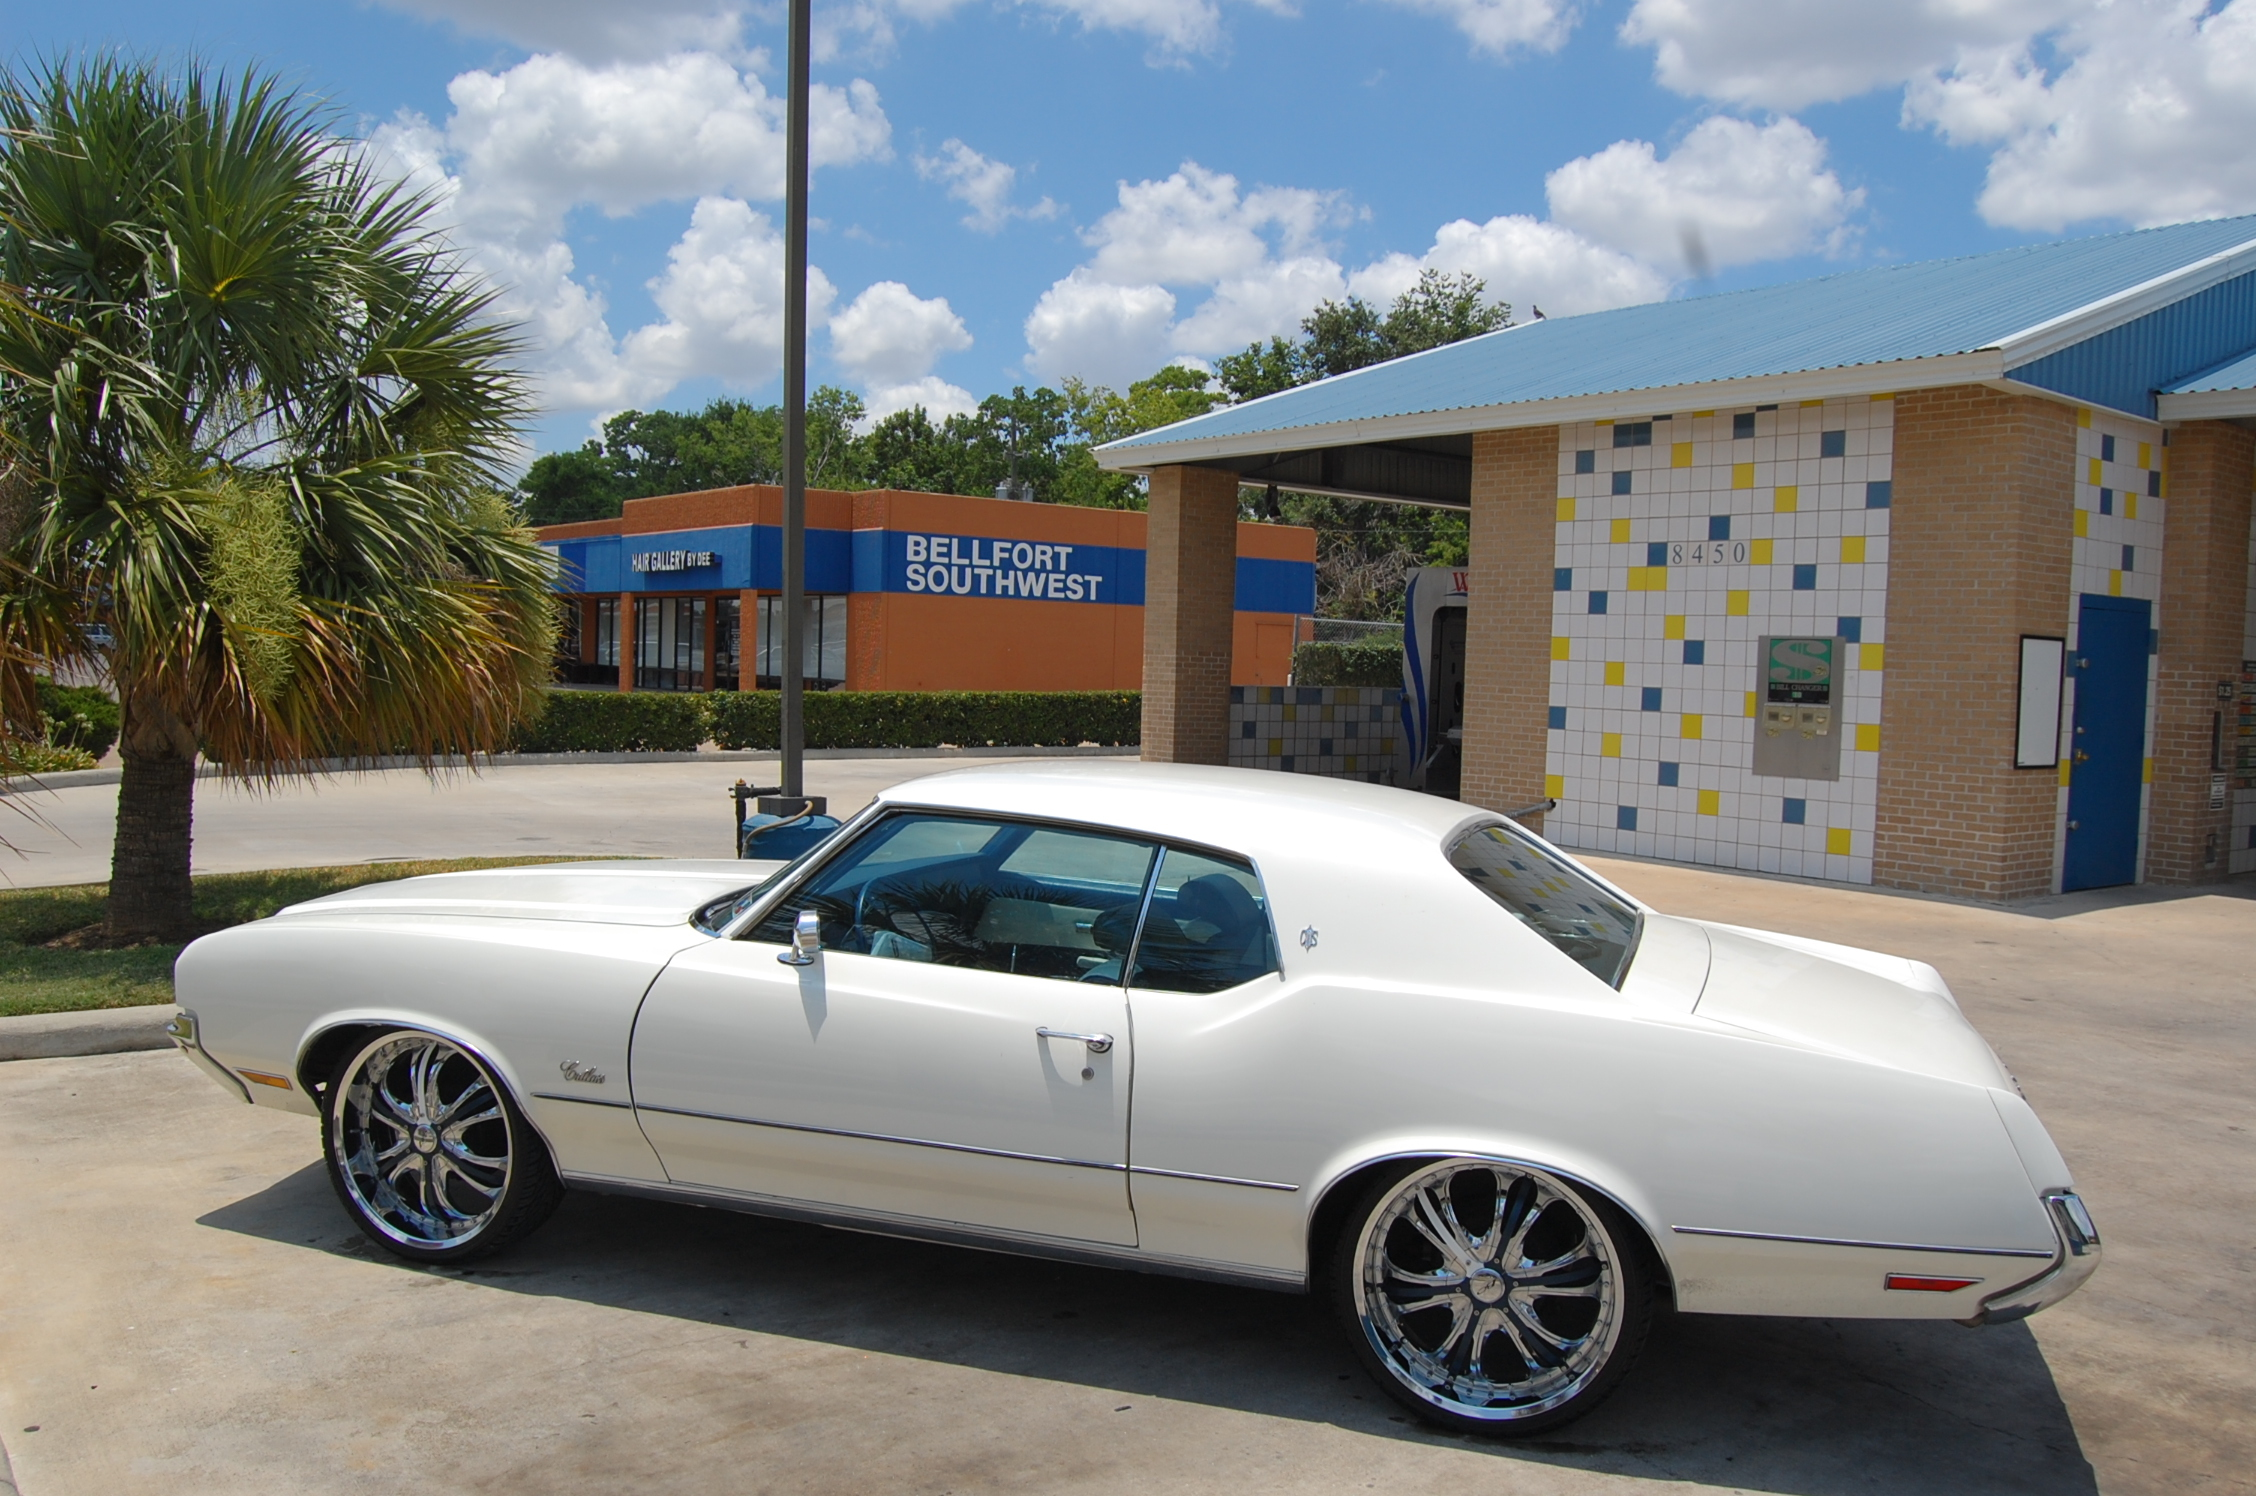 jmikefitness 1972 Oldsmobile Cutlass Supreme